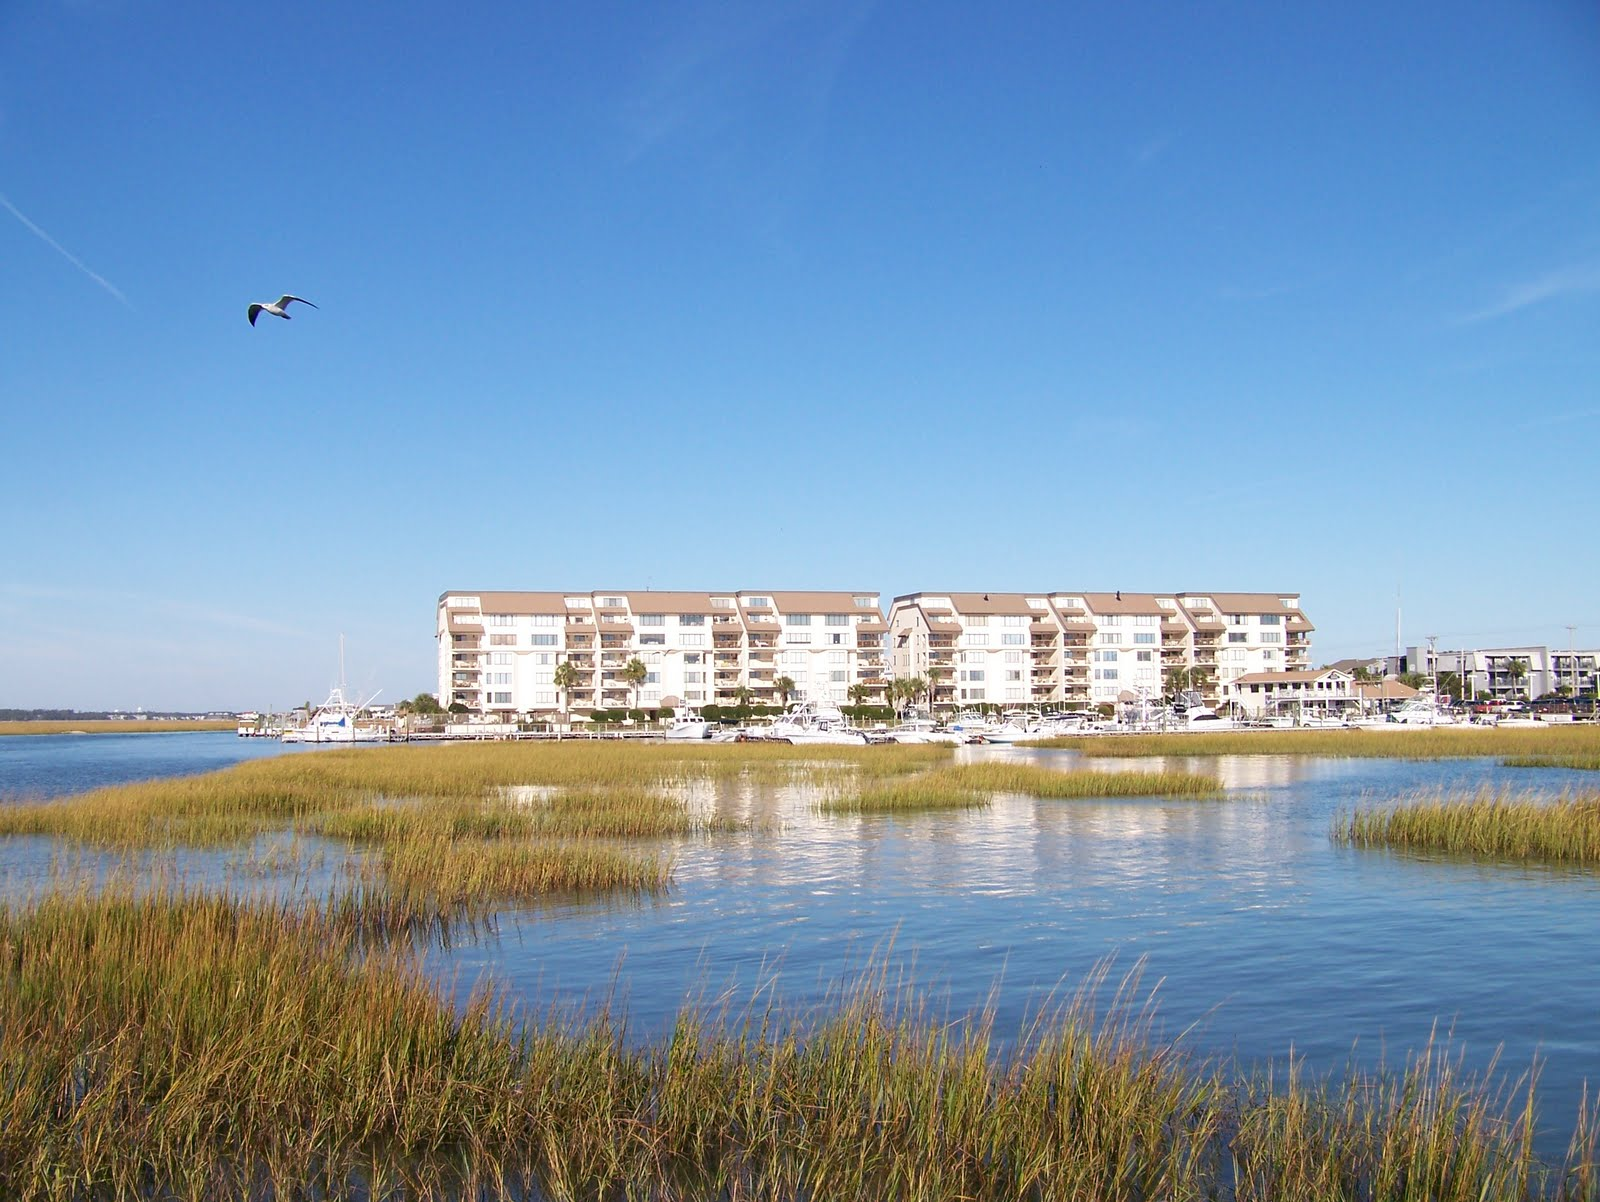 Garden City Realty Vacation Property Rentals And Sales Welcome To Garden City Beach South